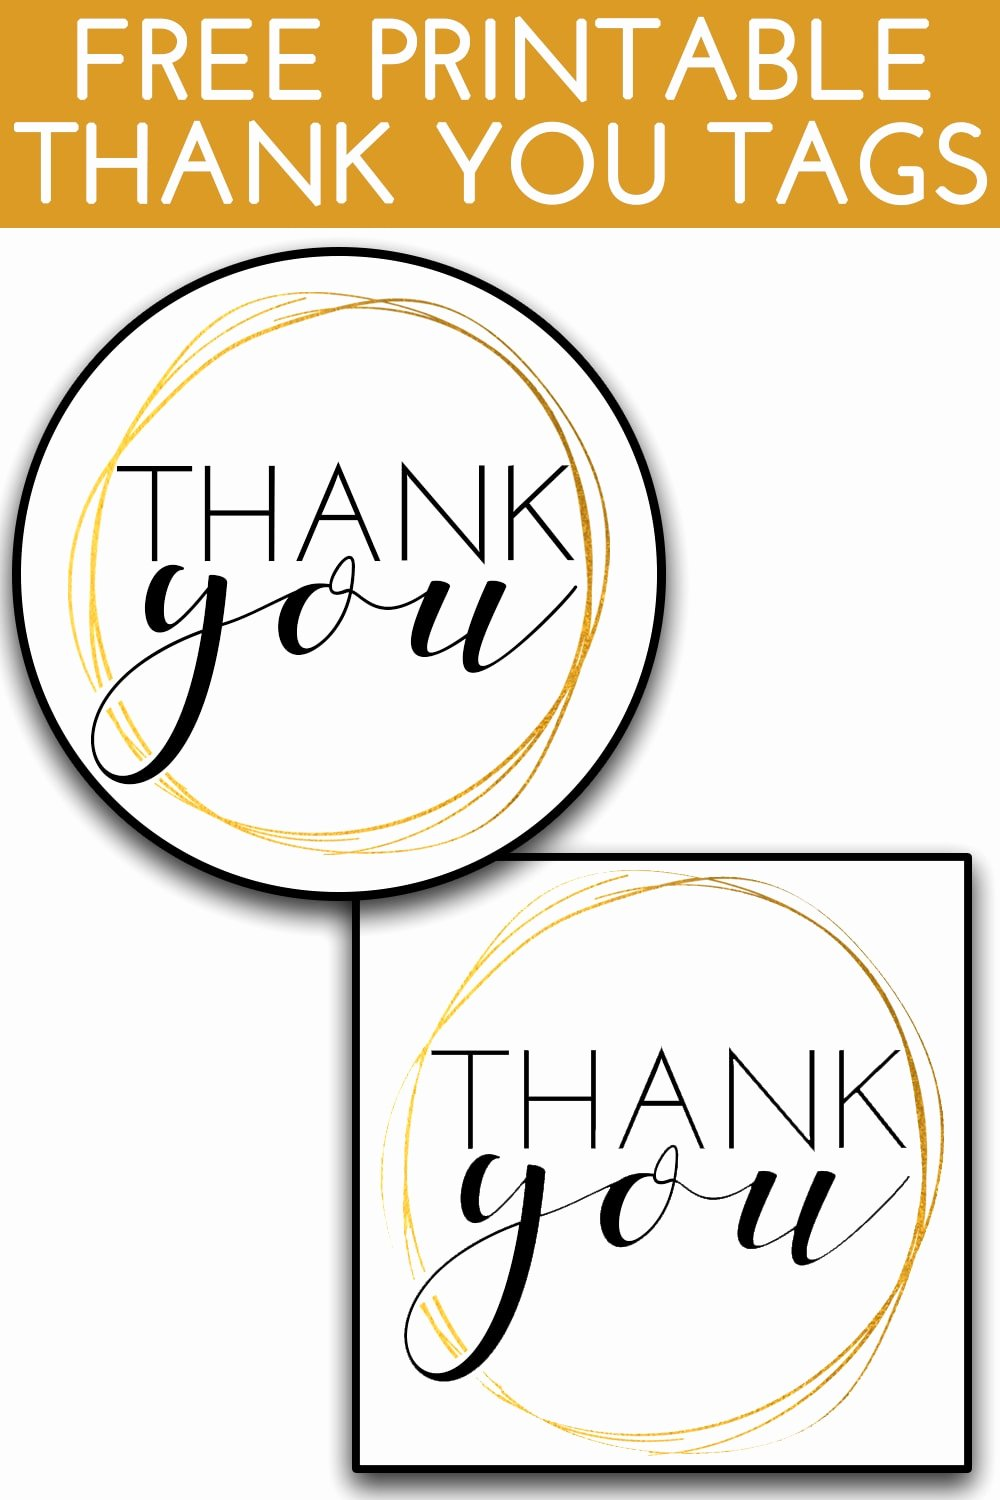 Free Printable Thank You Tags New Printable Thank You Tags